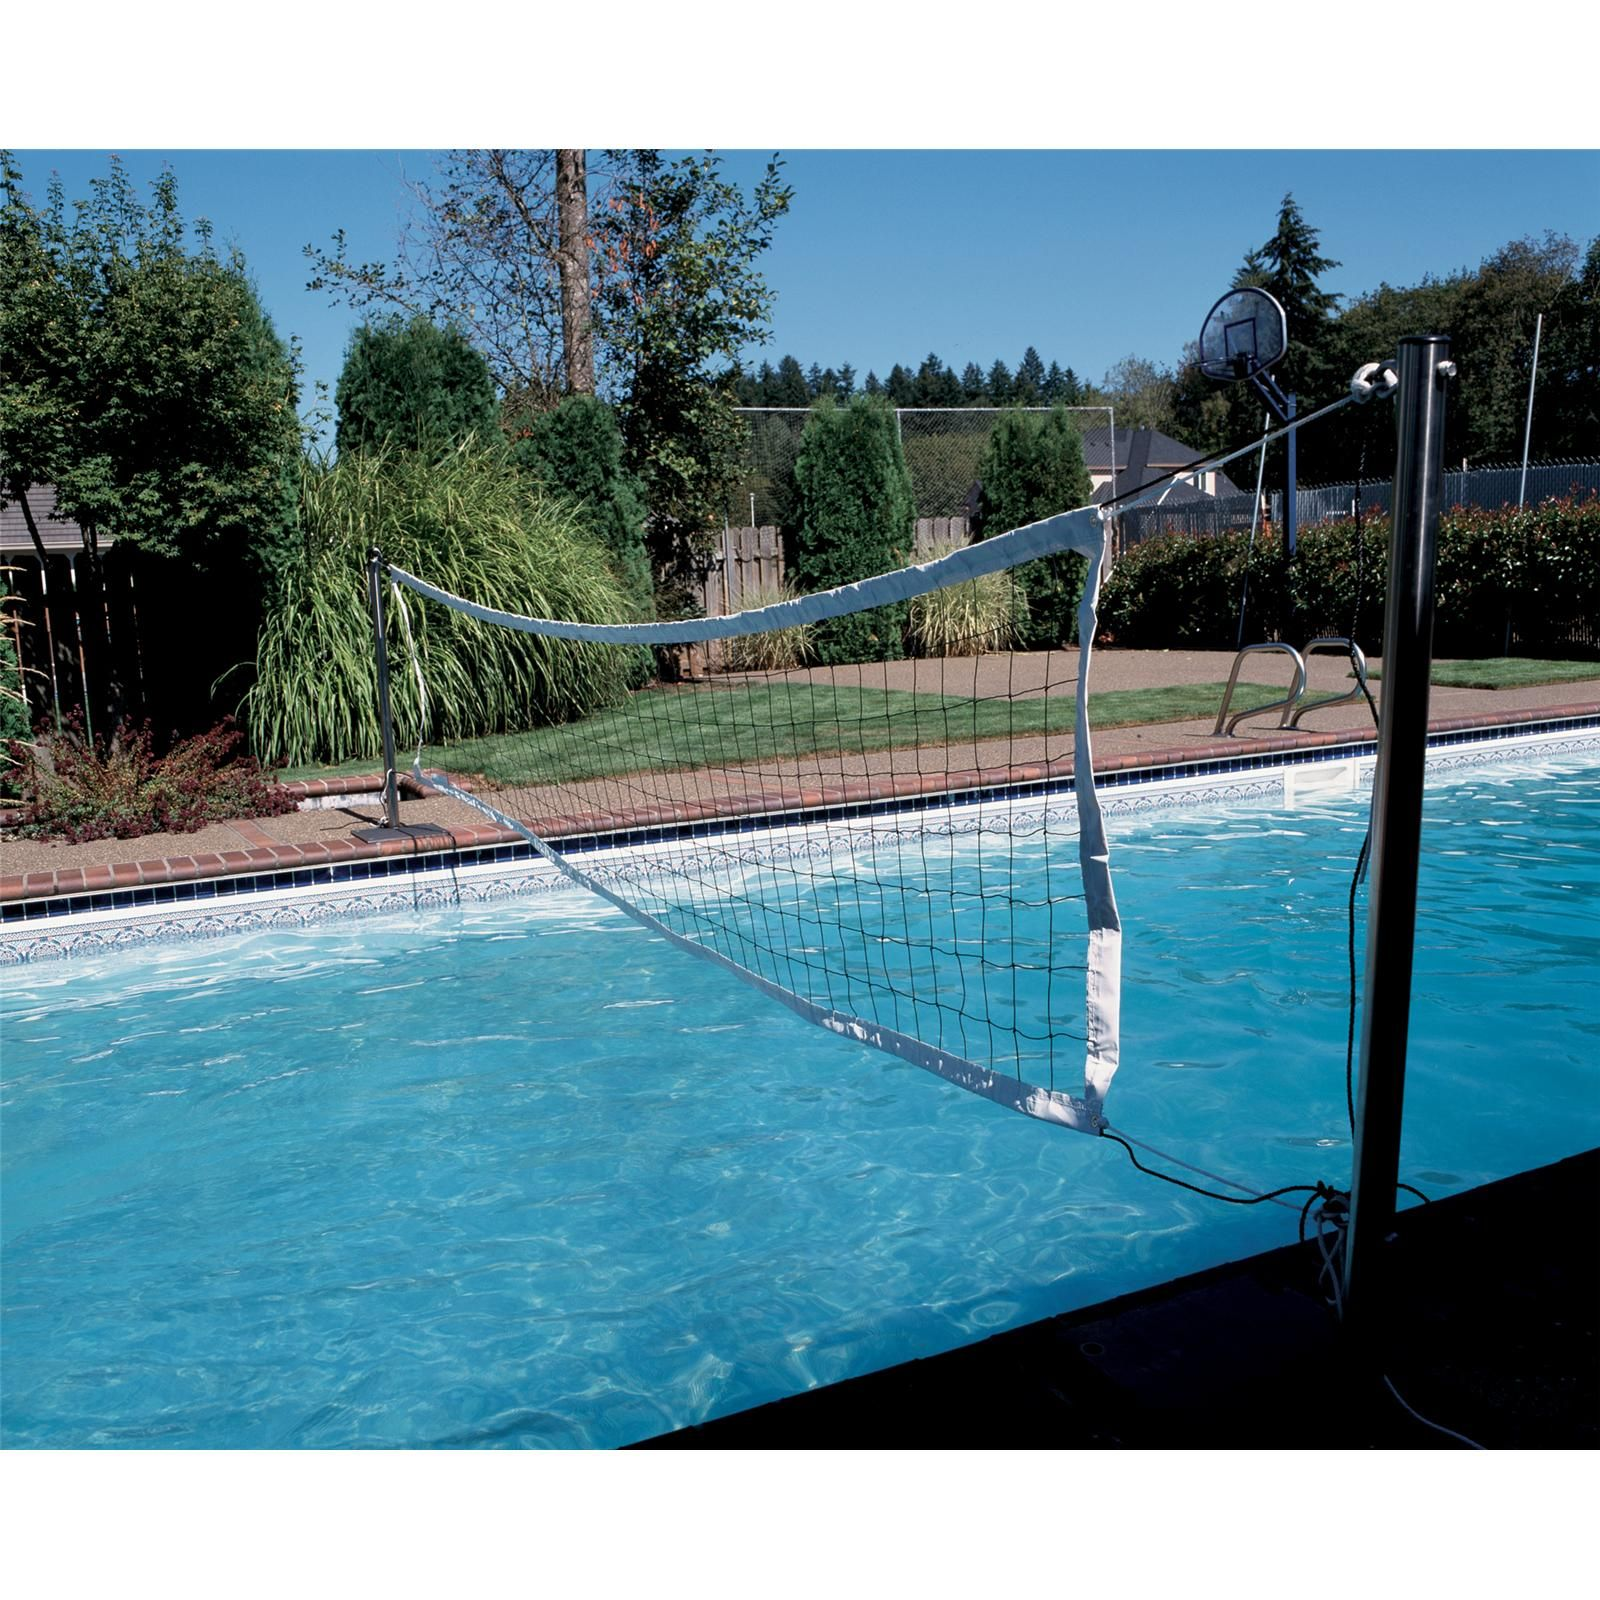 Swim N Spike Volleyball Game For Sale In Chesterfield St Louis Mo Baker Pool Spa Inc 636 532 3133 Spike Volleyball Volleyball Games Volleyball